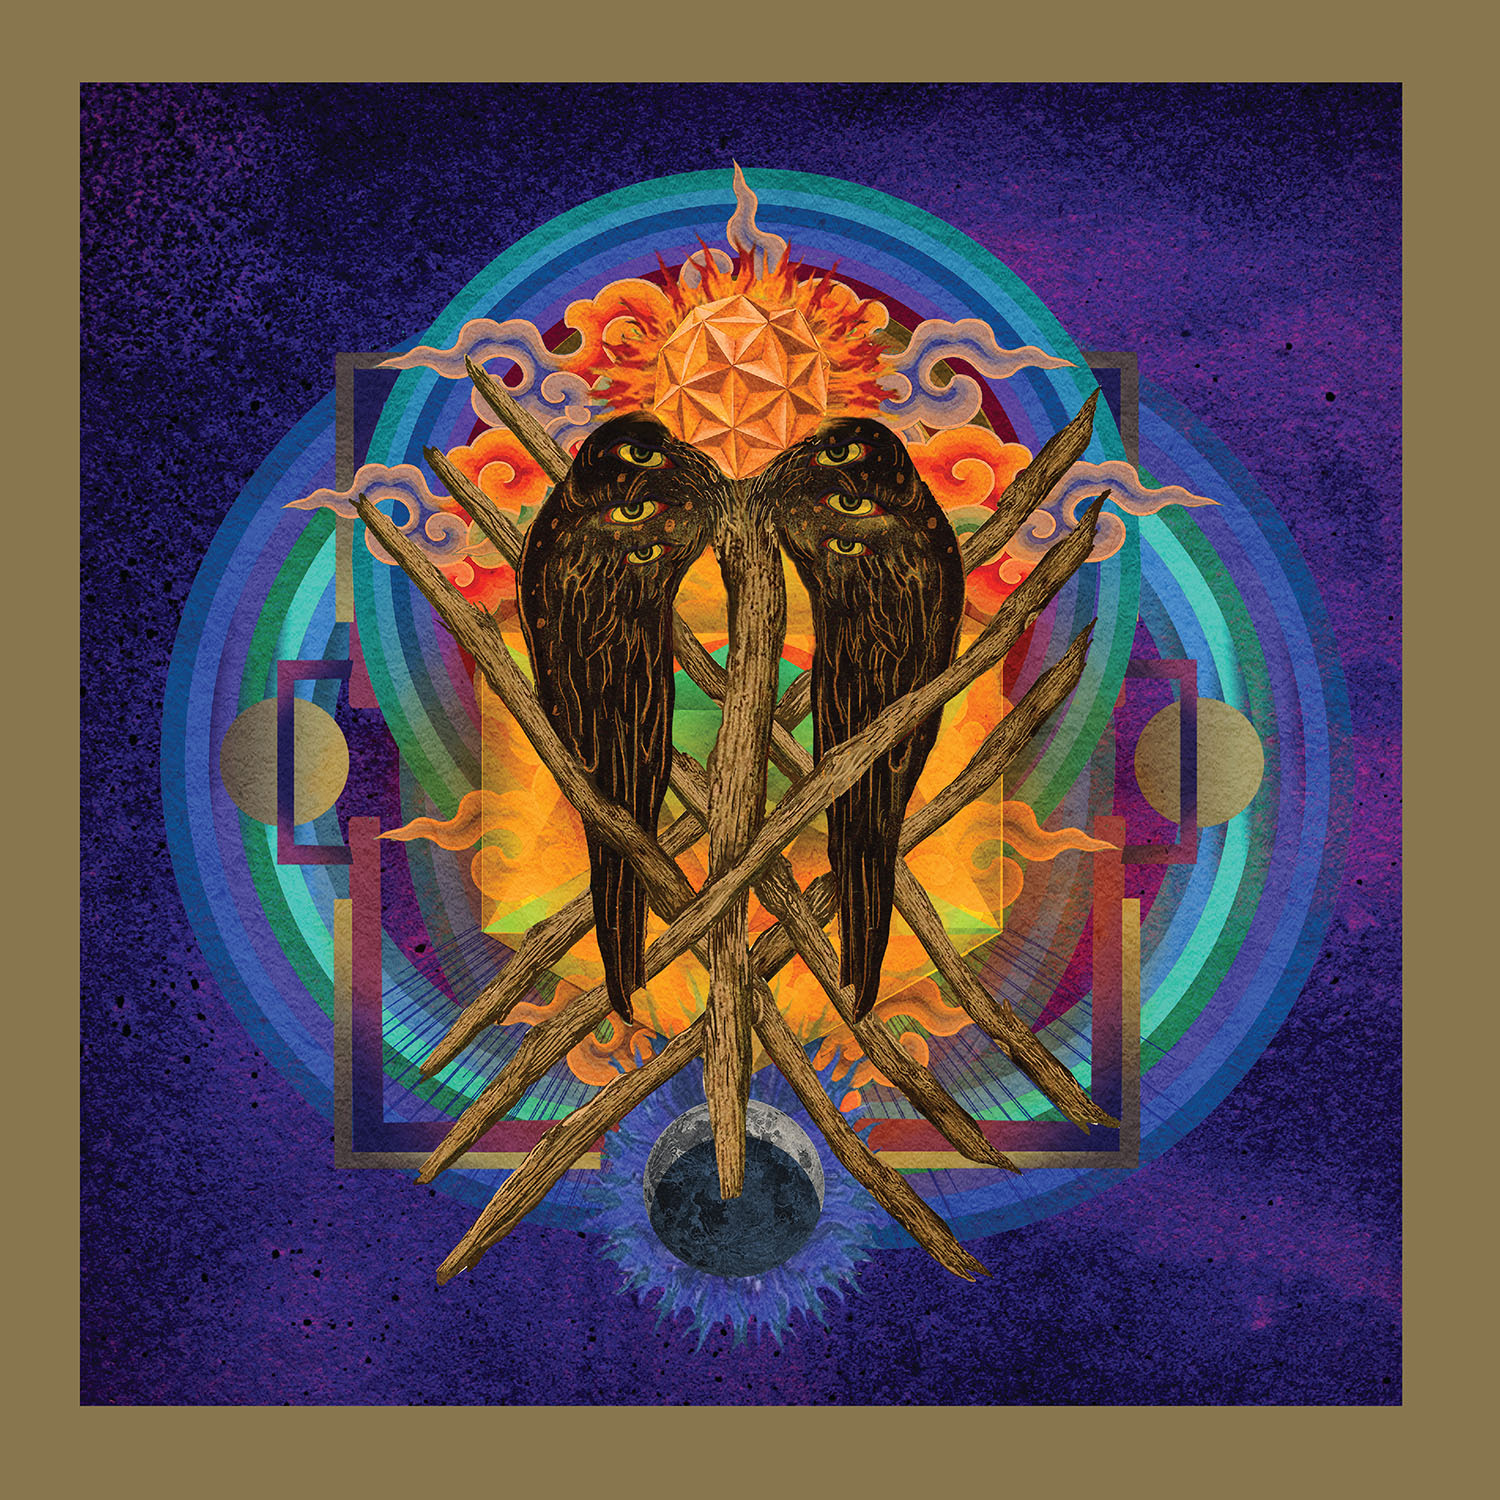 Preview: YOB (us/relapse) & Wiegedood